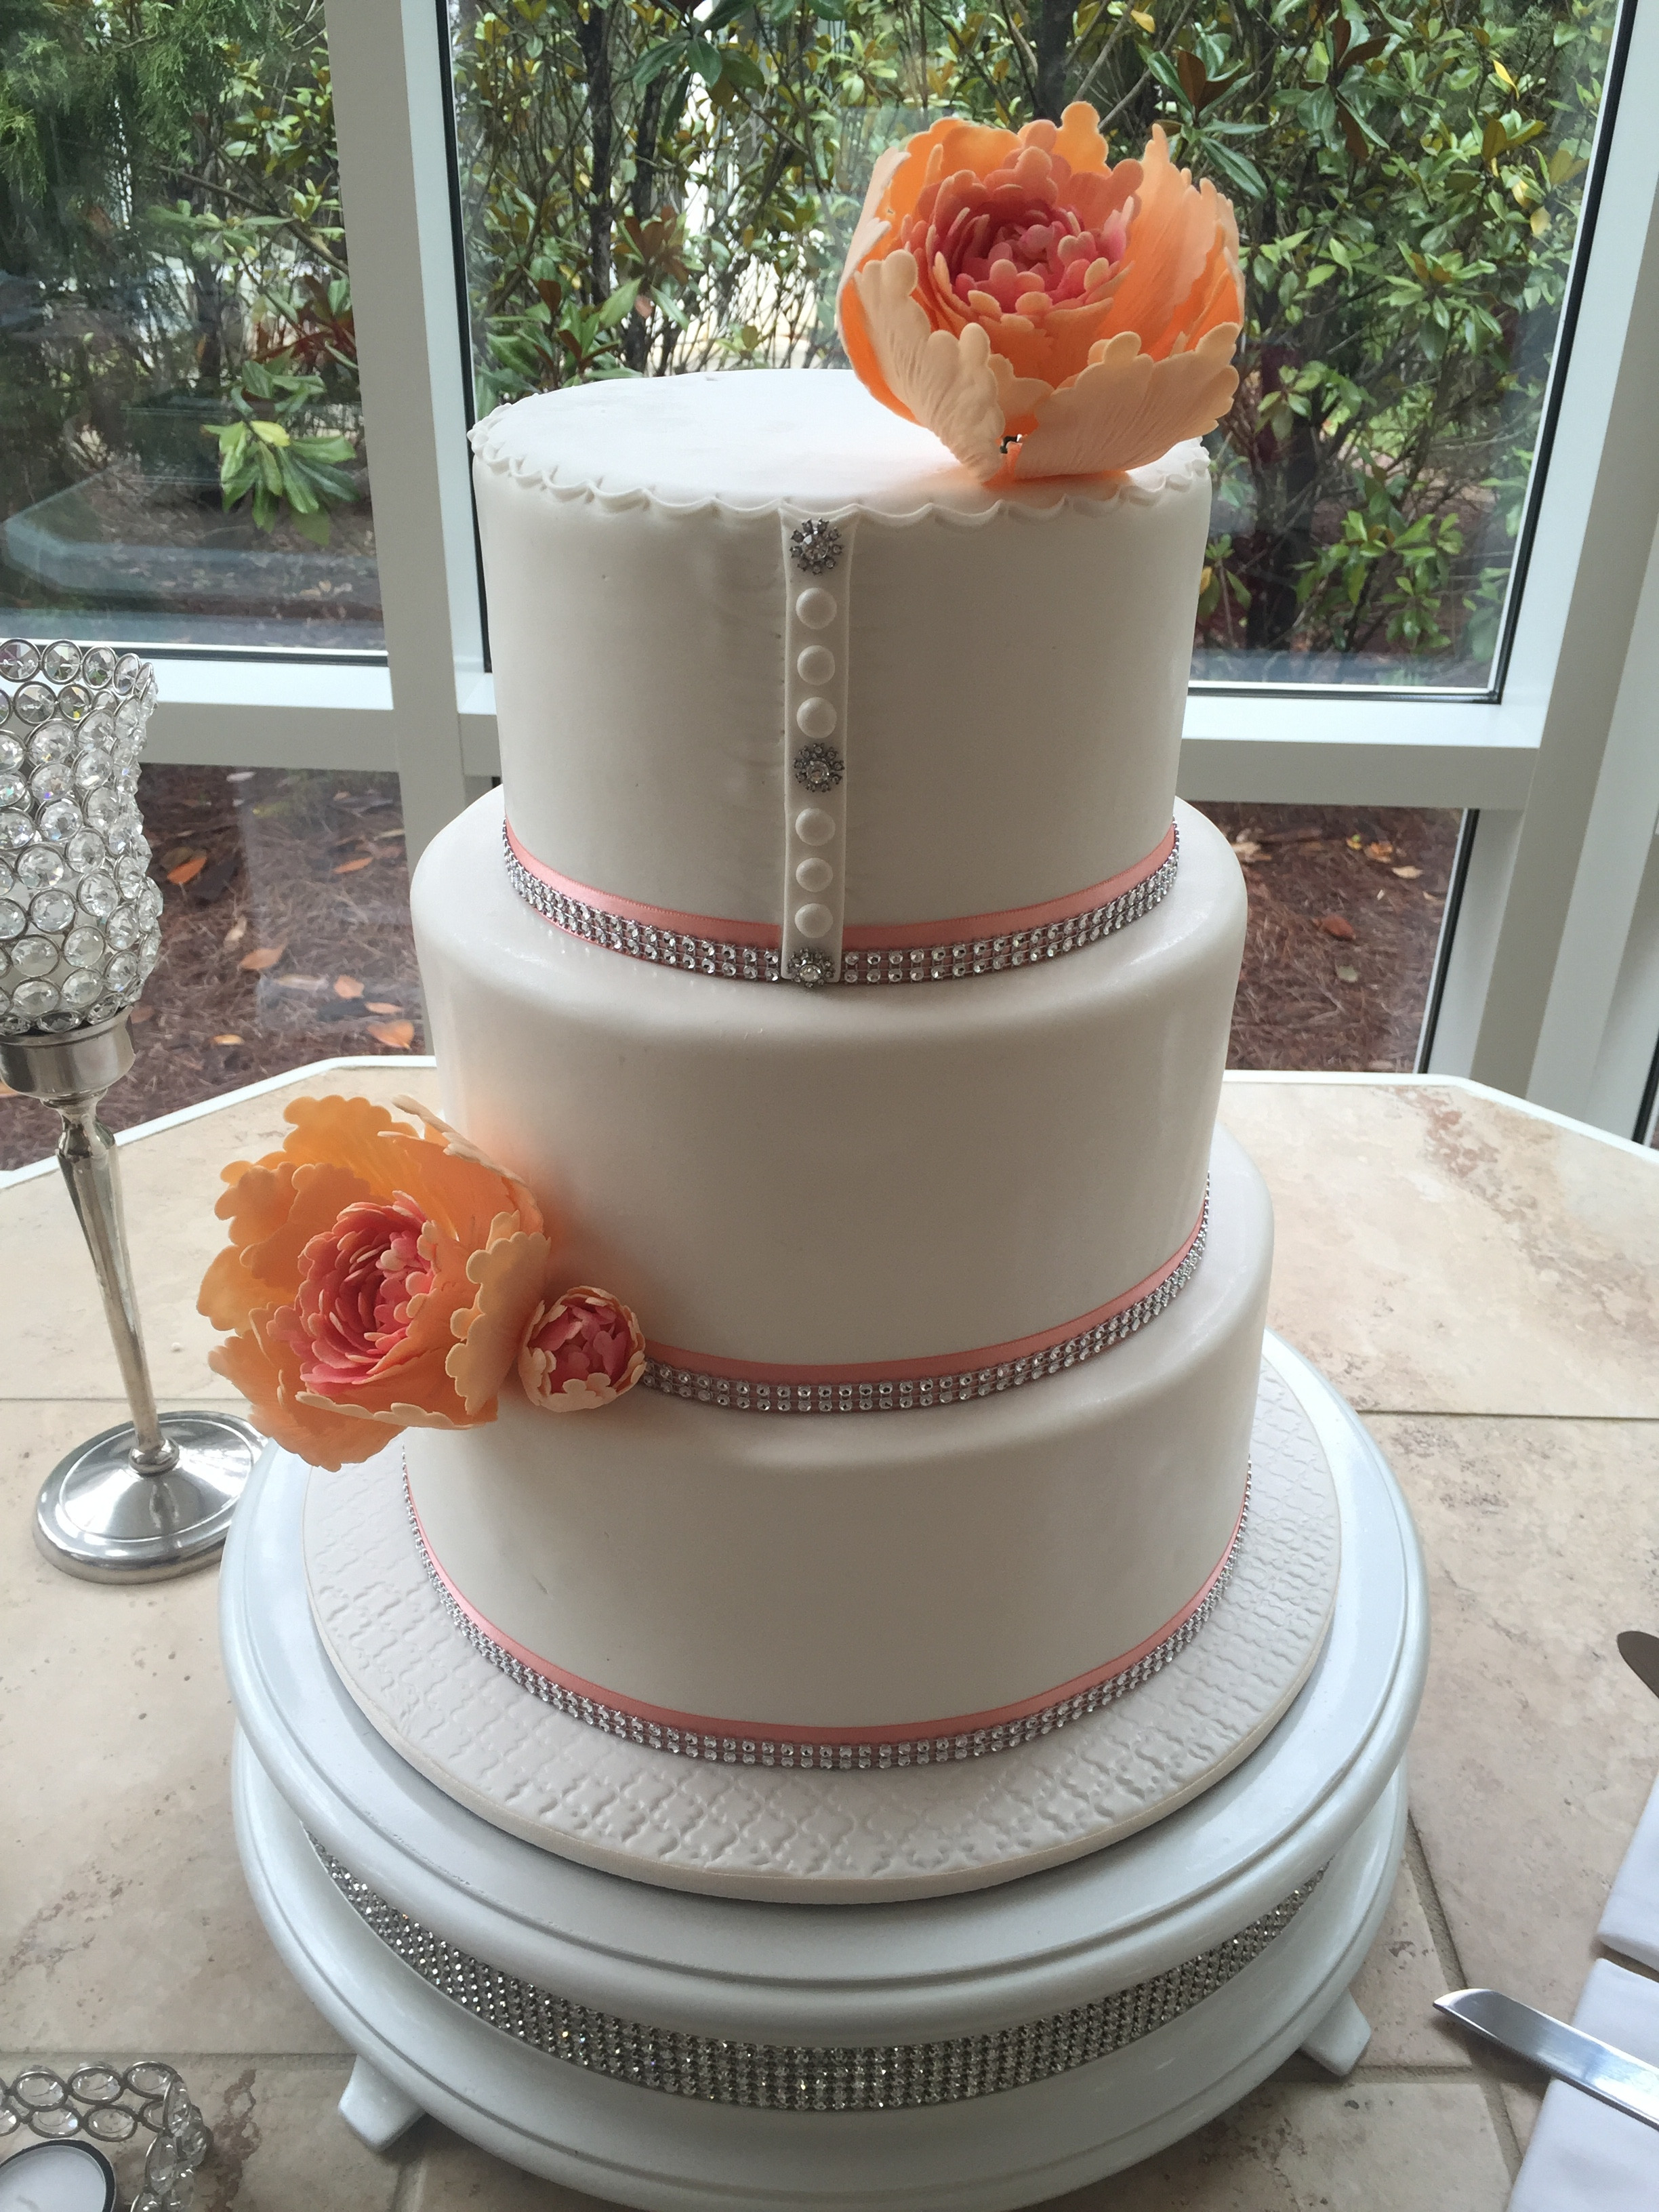 Best Wedding Cakes Atlanta  Wedding Cakes Marietta Ga